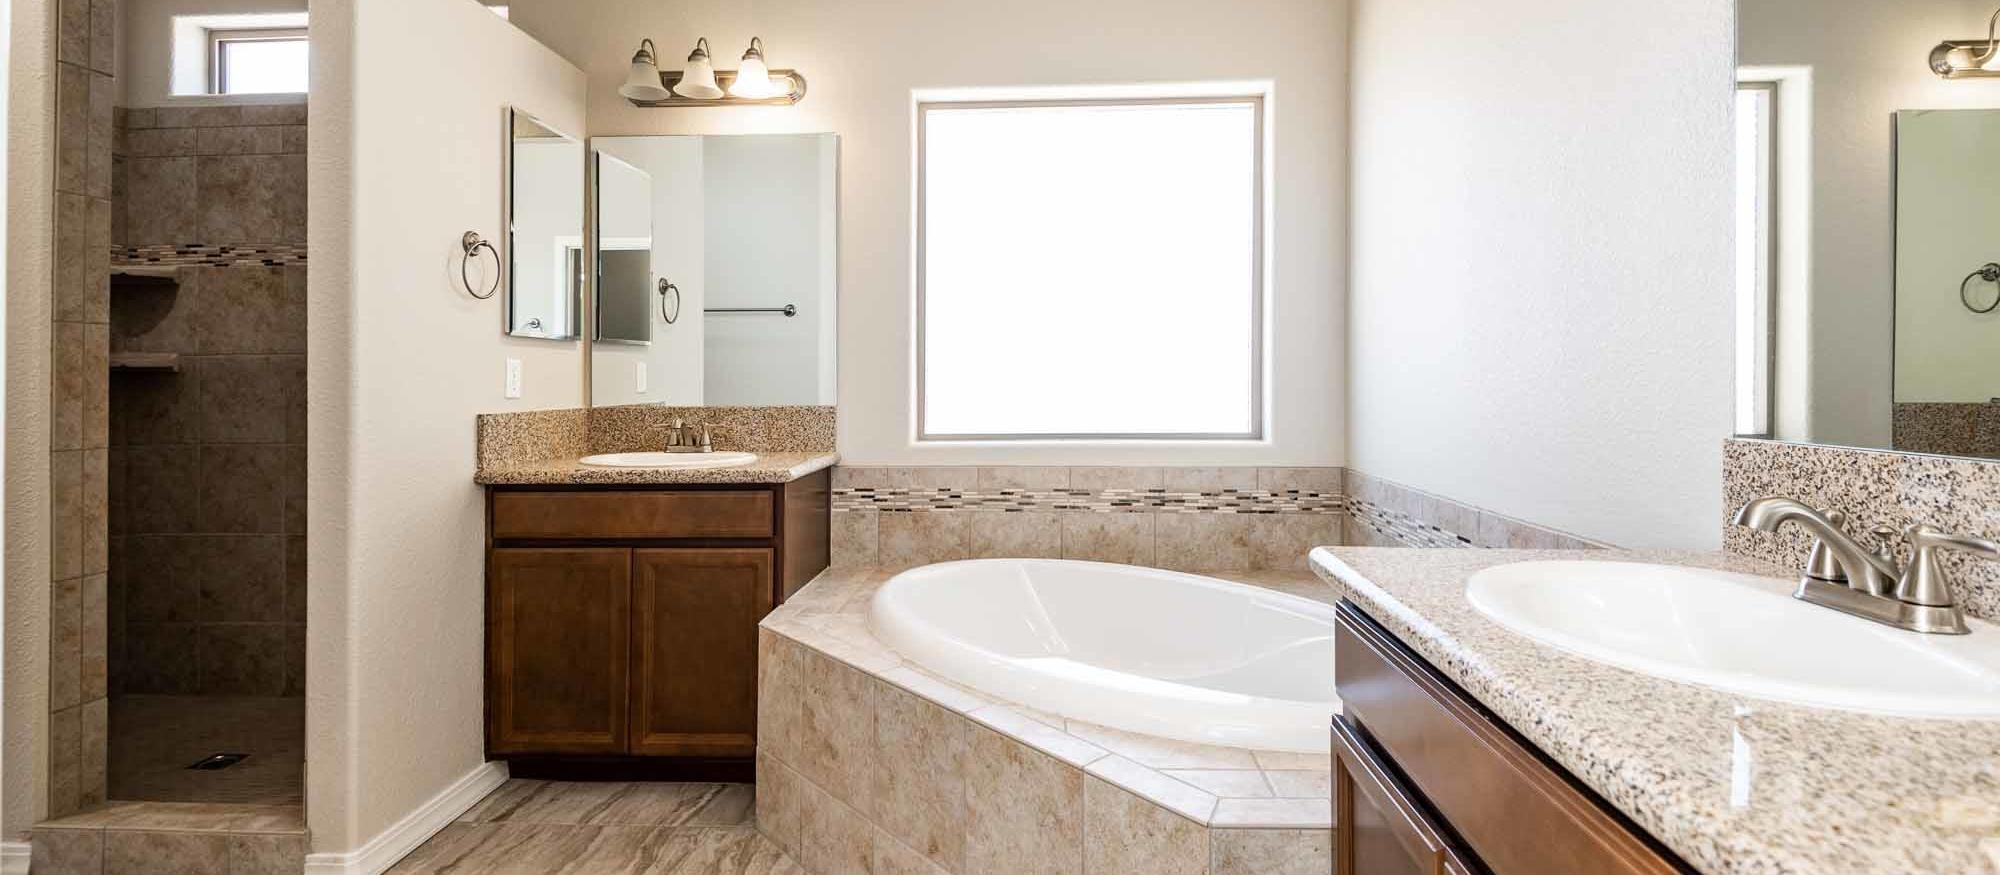 Bathroom featured in the Ocotillo 2374 By Angle Homes in Kingman-Lake Havasu City, AZ